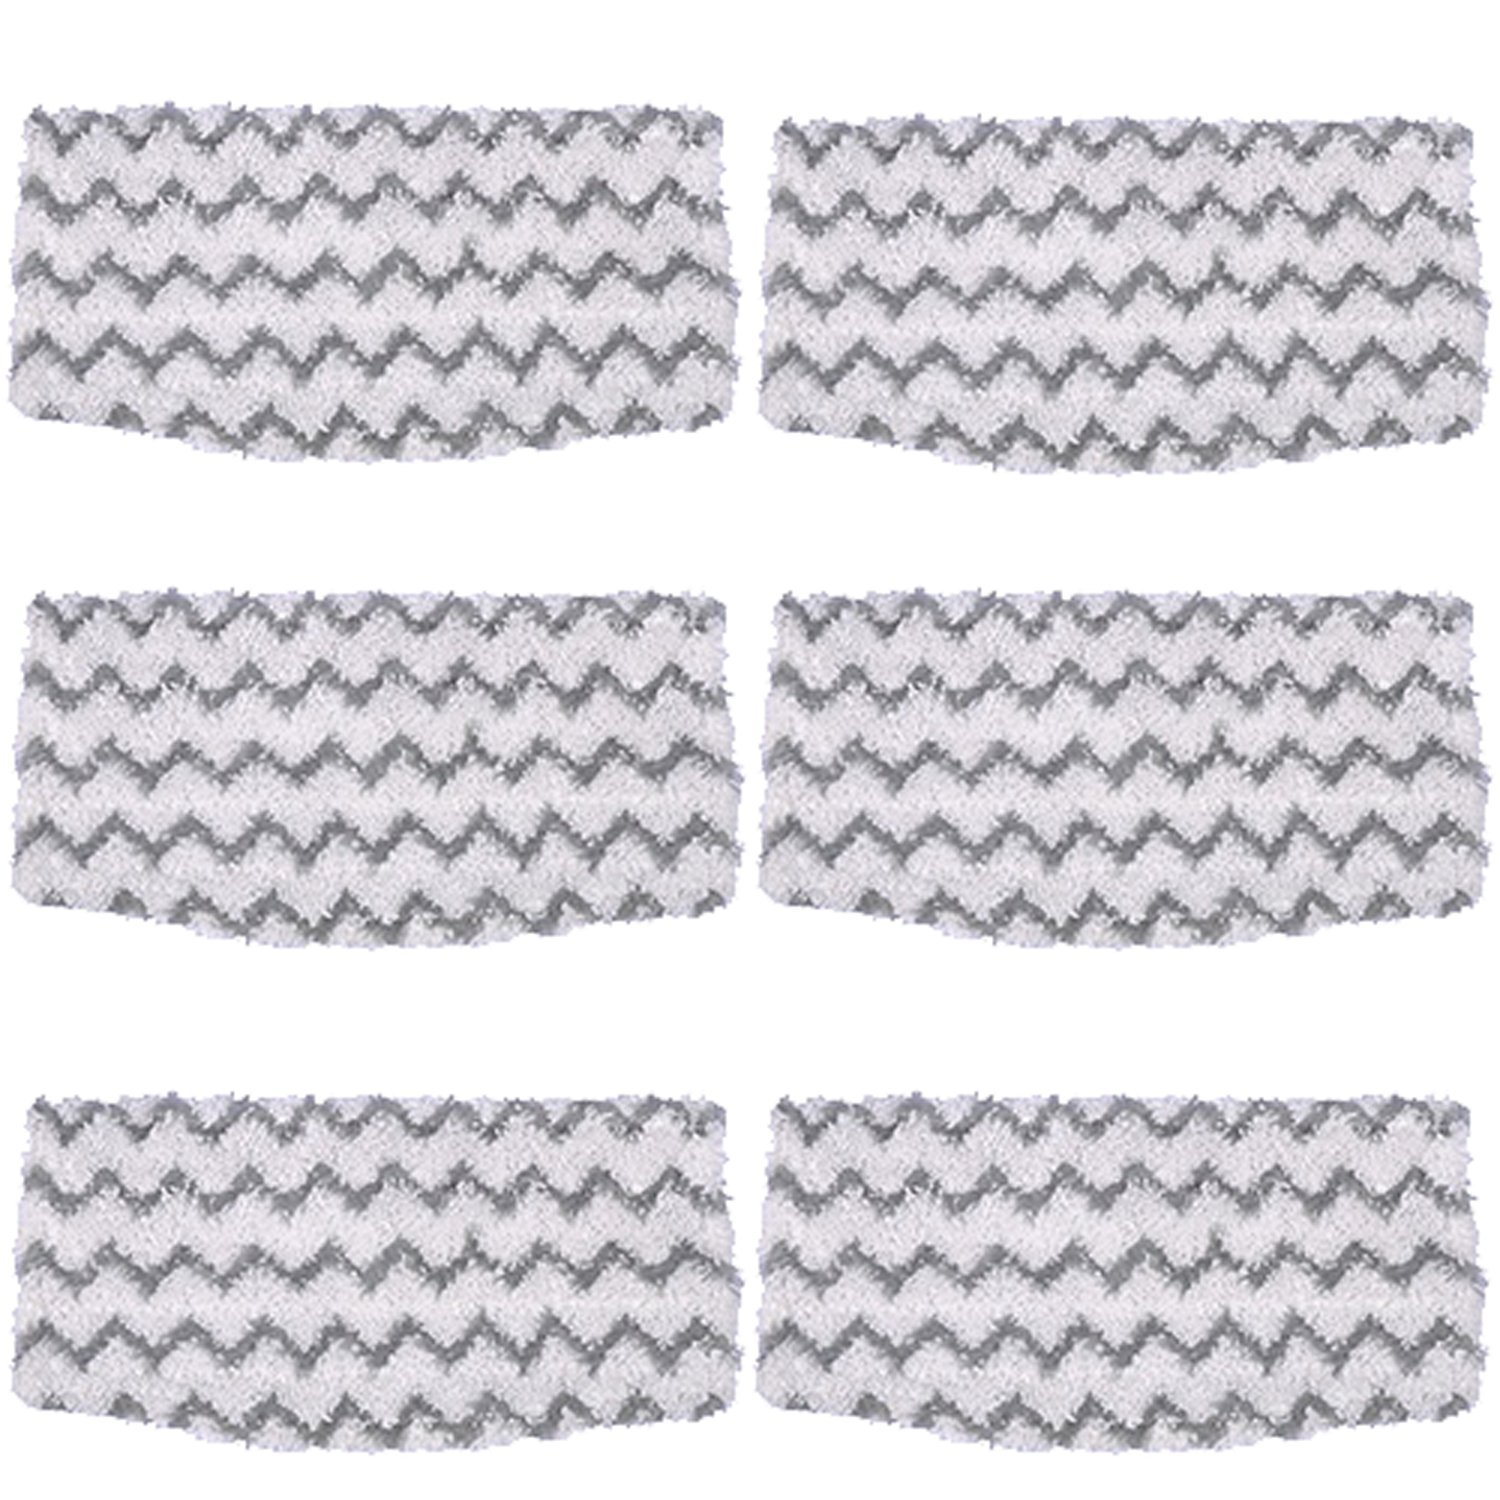 Amyehouse 6 Packs Dirt Grip Microfiber Pads Replacement for Shark Steam Mop S1000 S1000A S1000C S1000WM S1001C Vacuum Cleaners